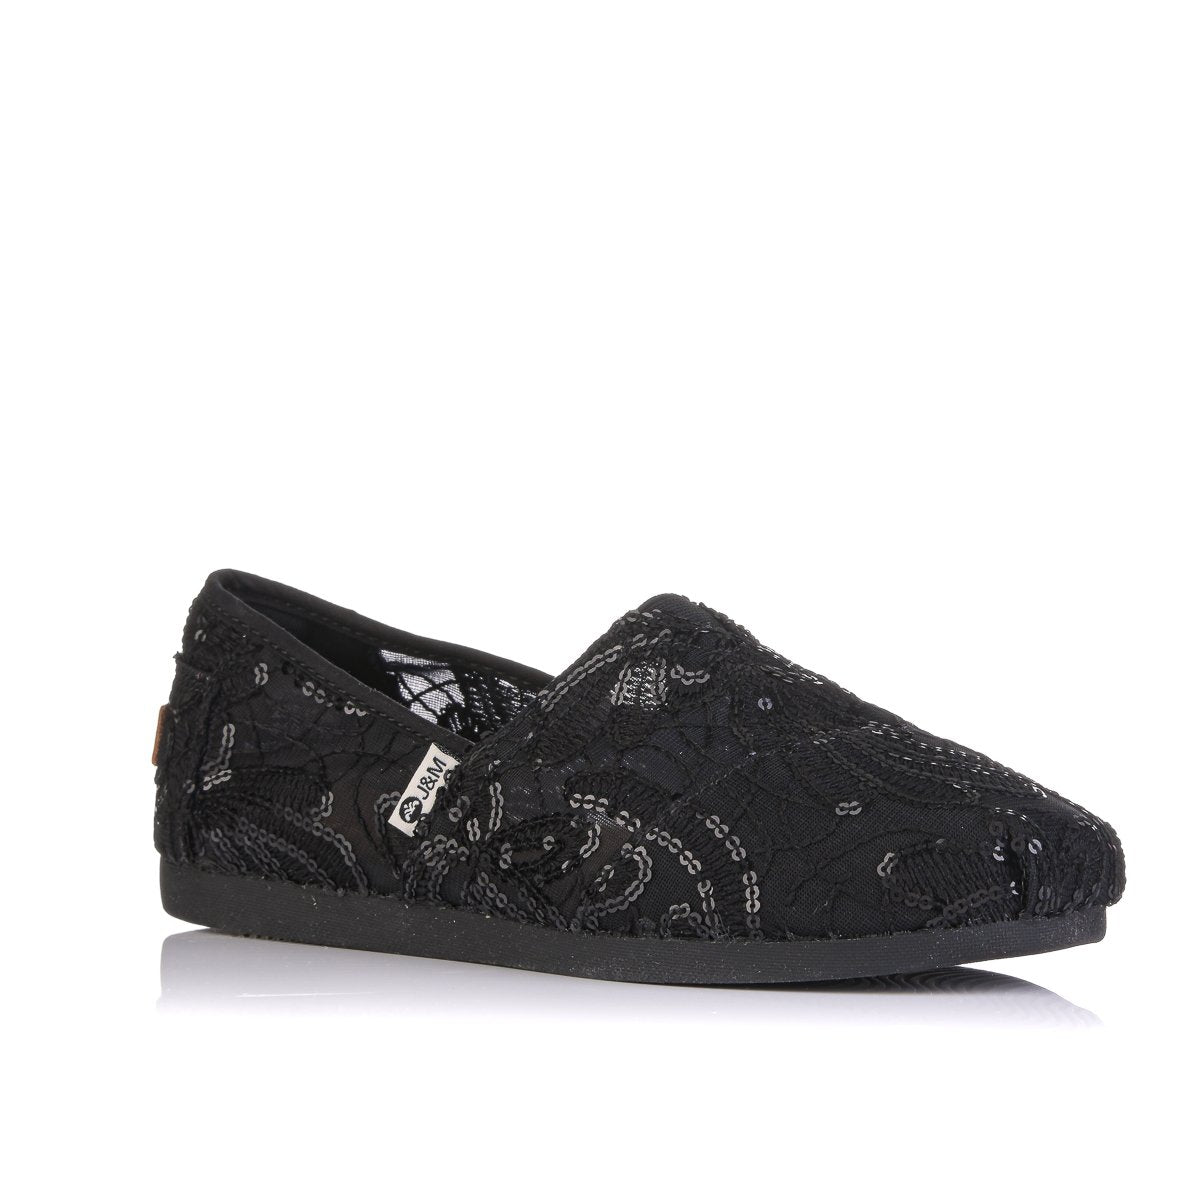 JM 19004 BLACK ESPADRILLES SINGLE